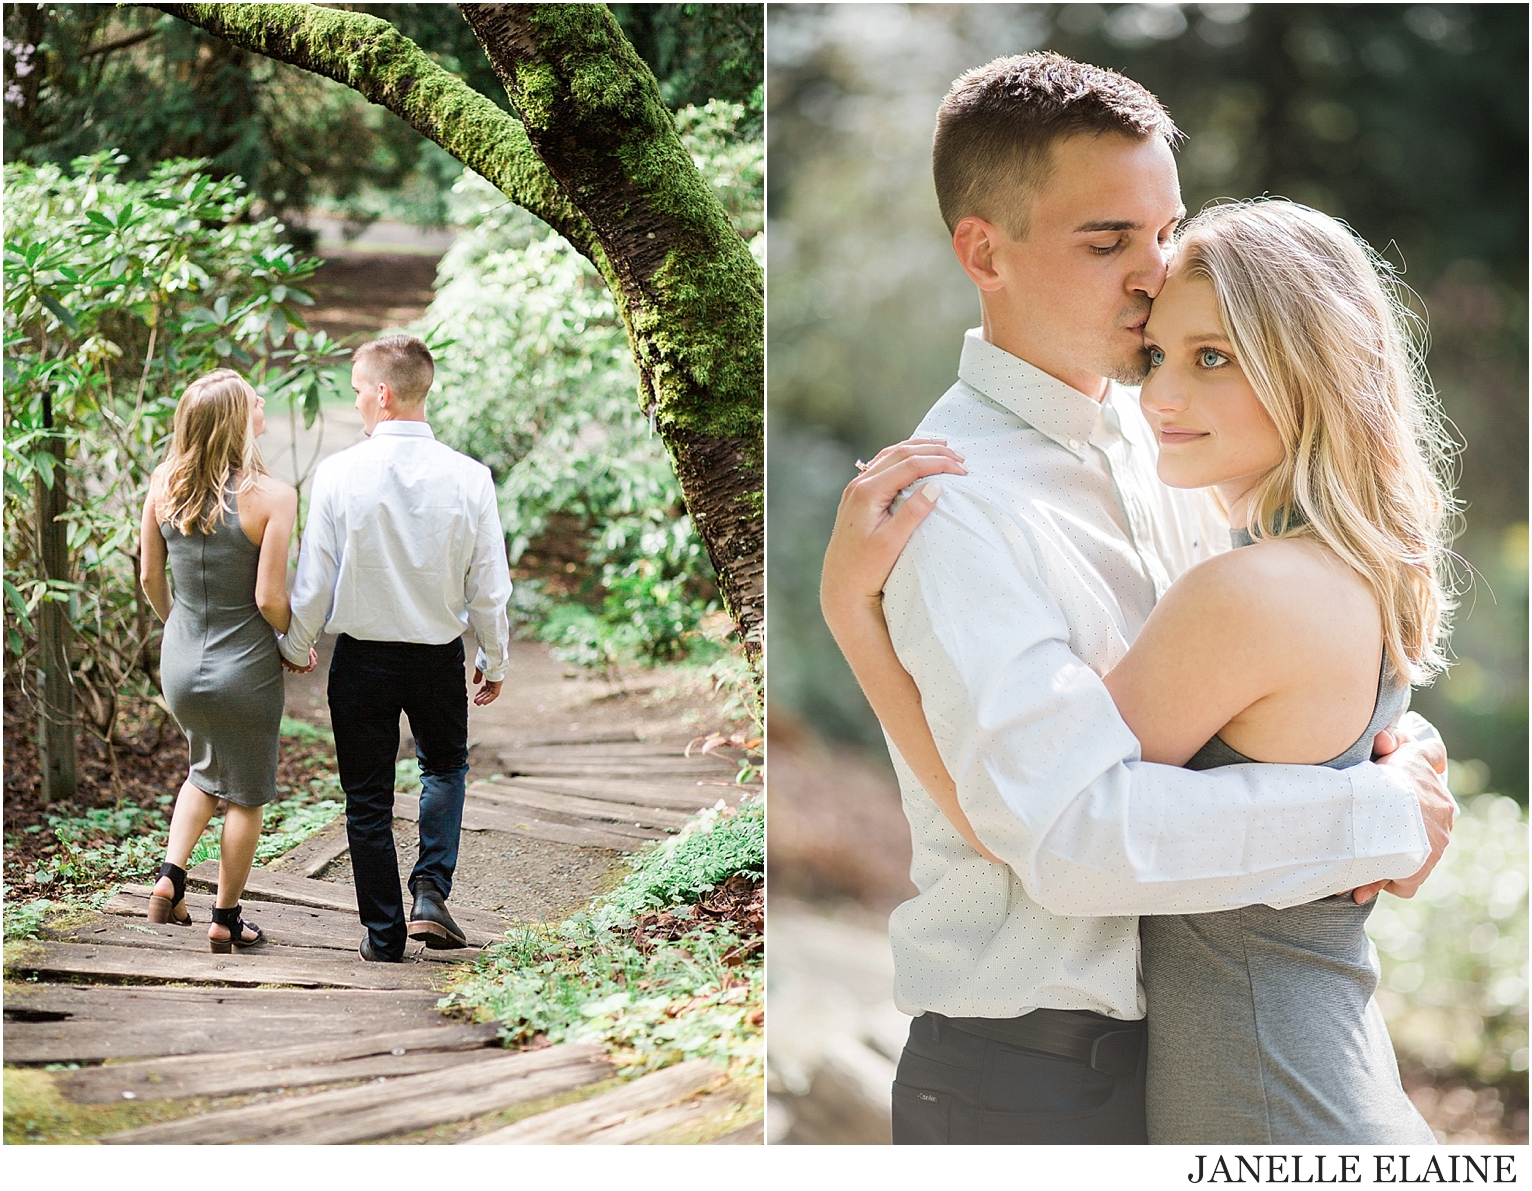 tricia and nate engagement photos-janelle elaine photography-32.jpg